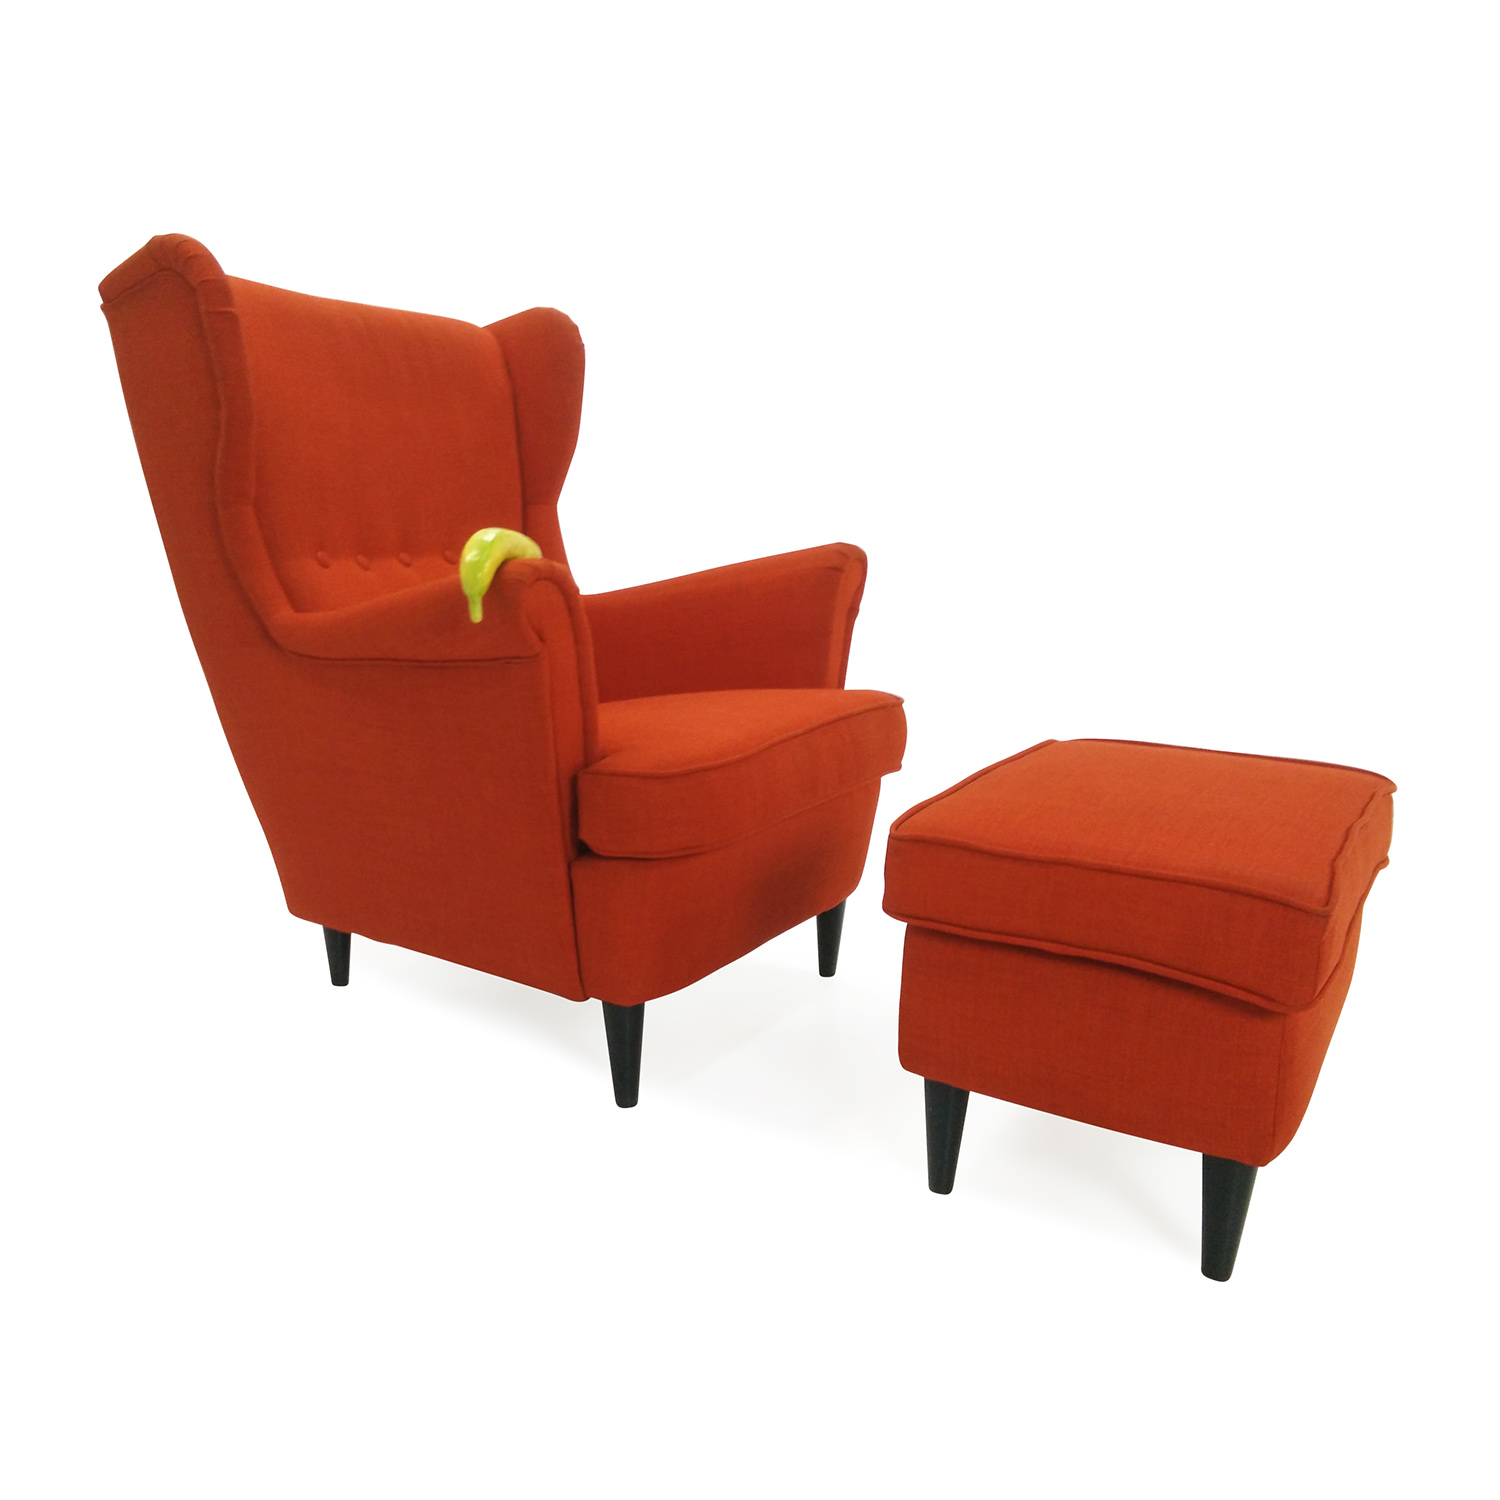 Fauteuil ikea orange for Fauteuil ikea orange